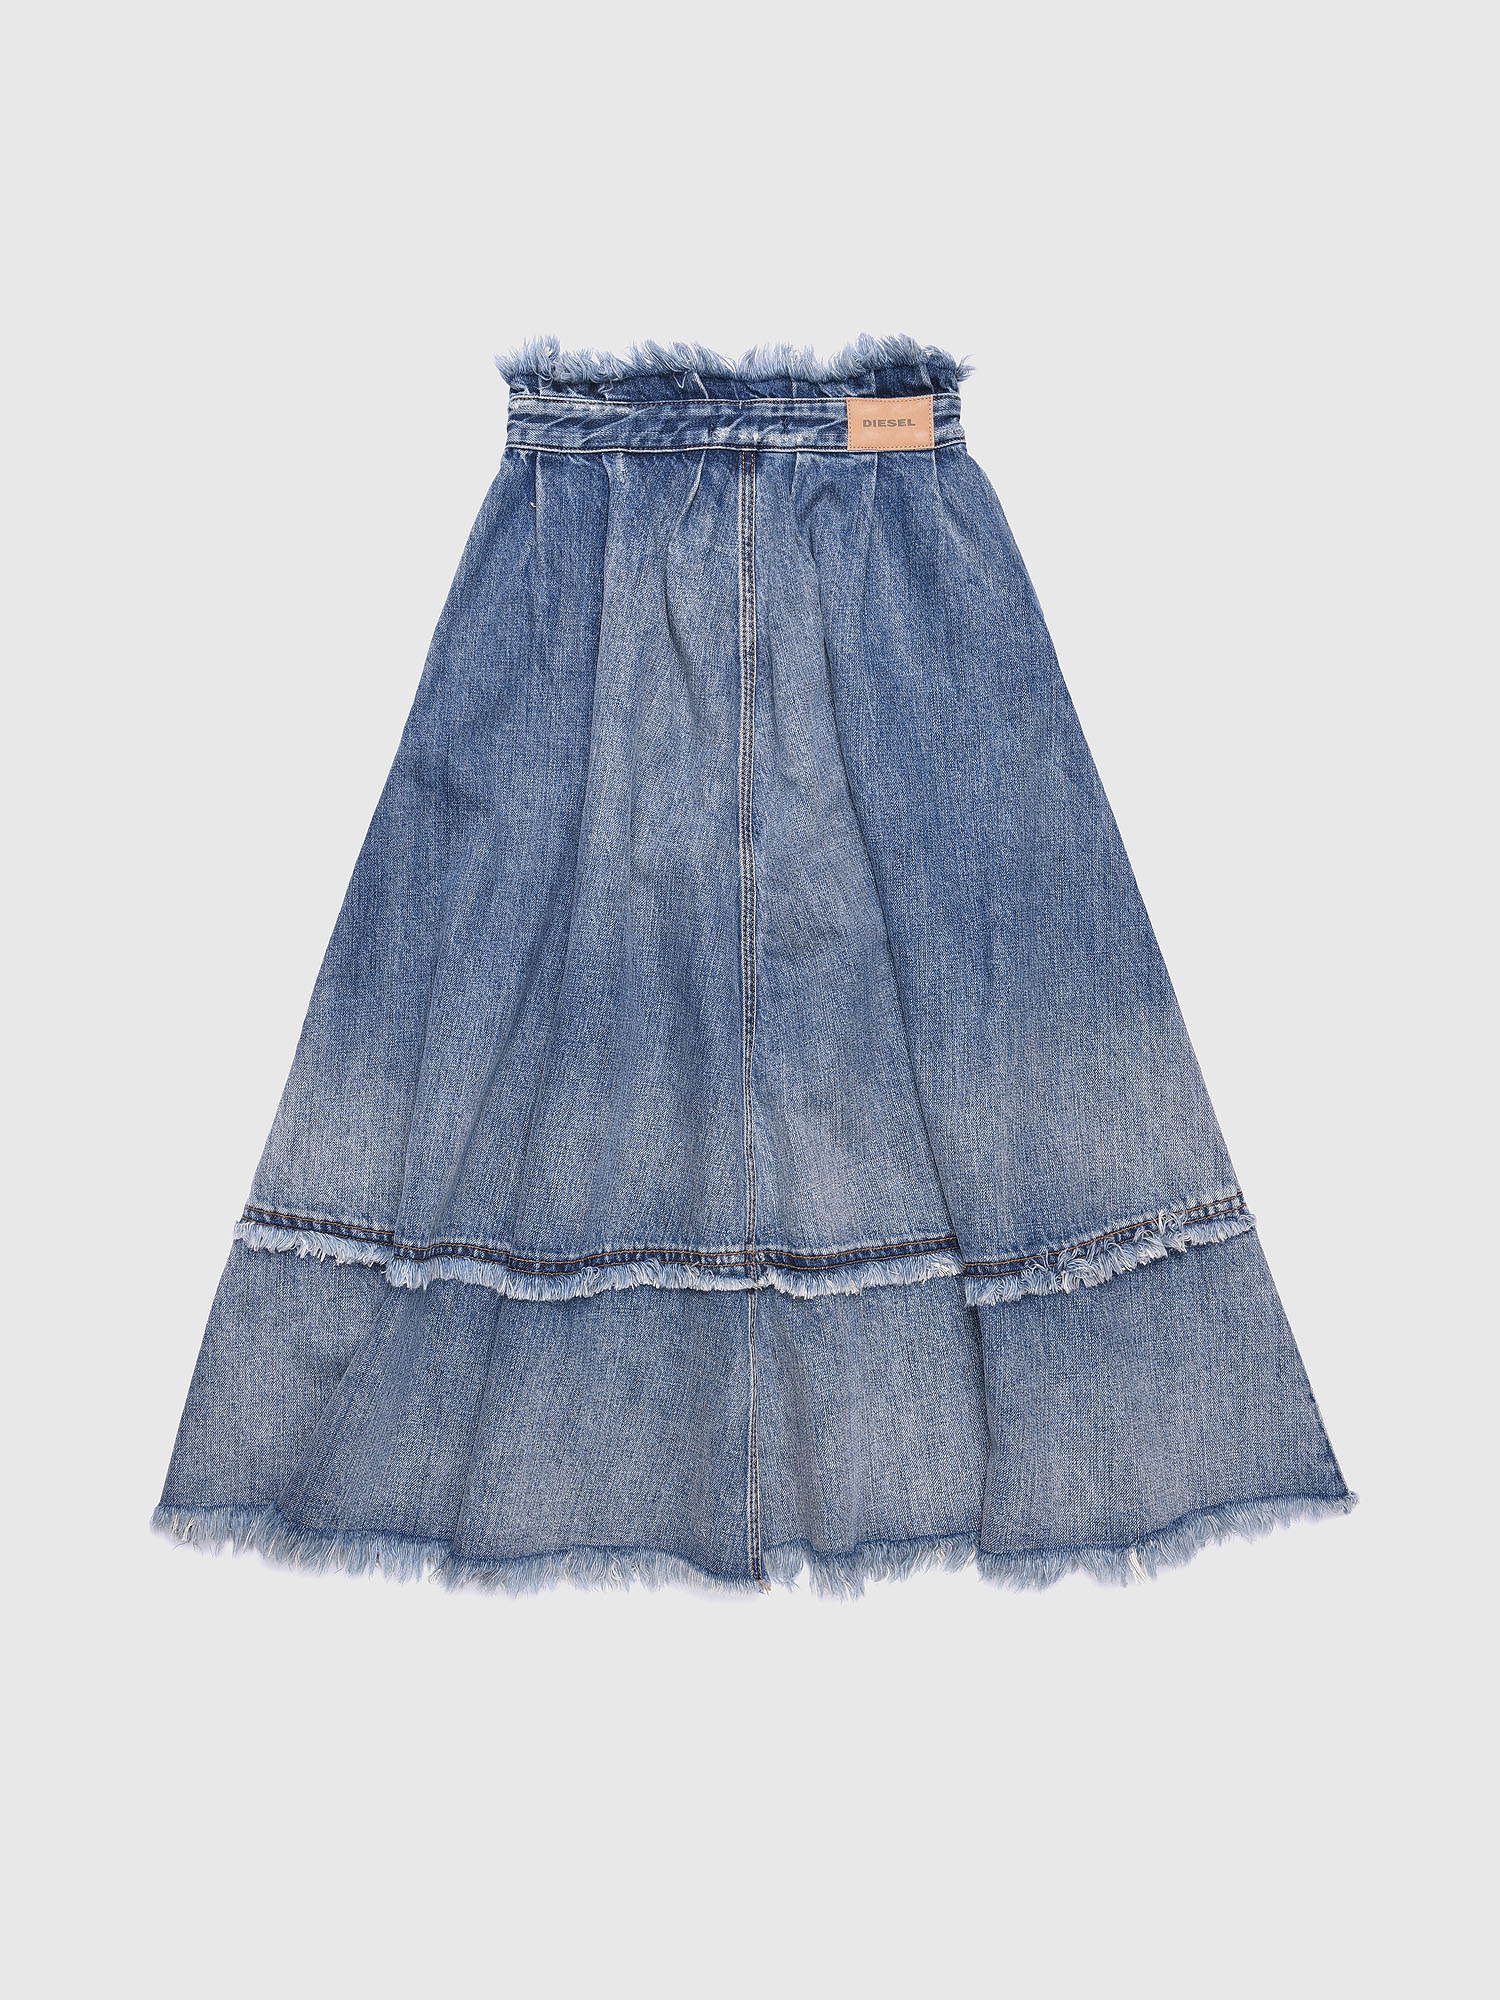 Diesel - GLULABY,  - Skirts - Image 2